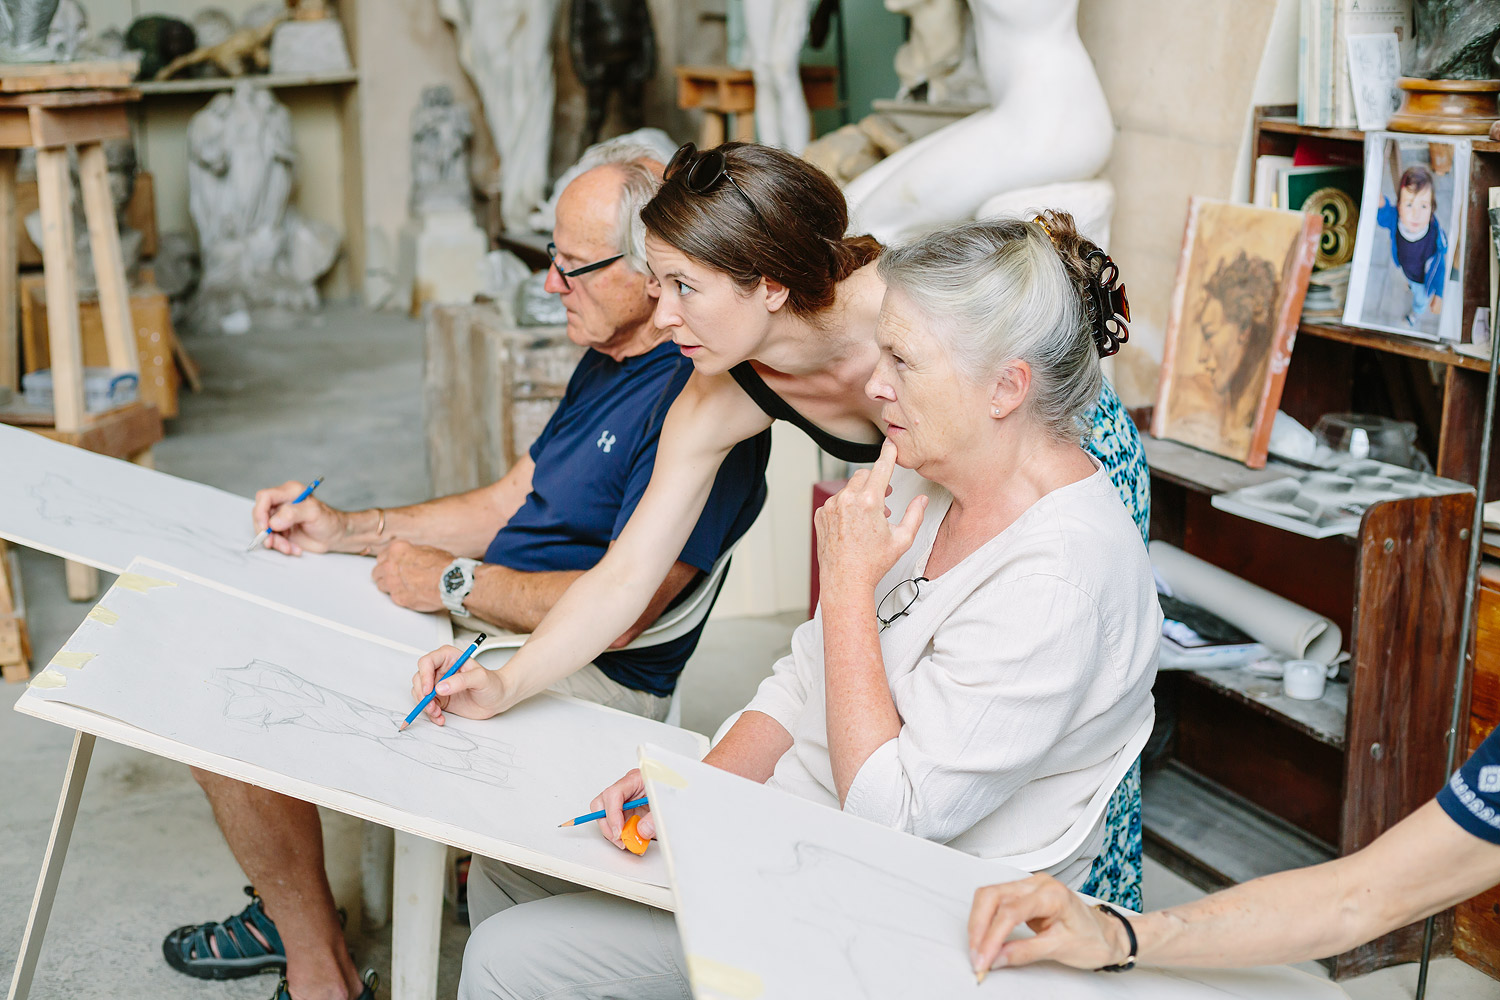 Anatomical Drawing in Italy